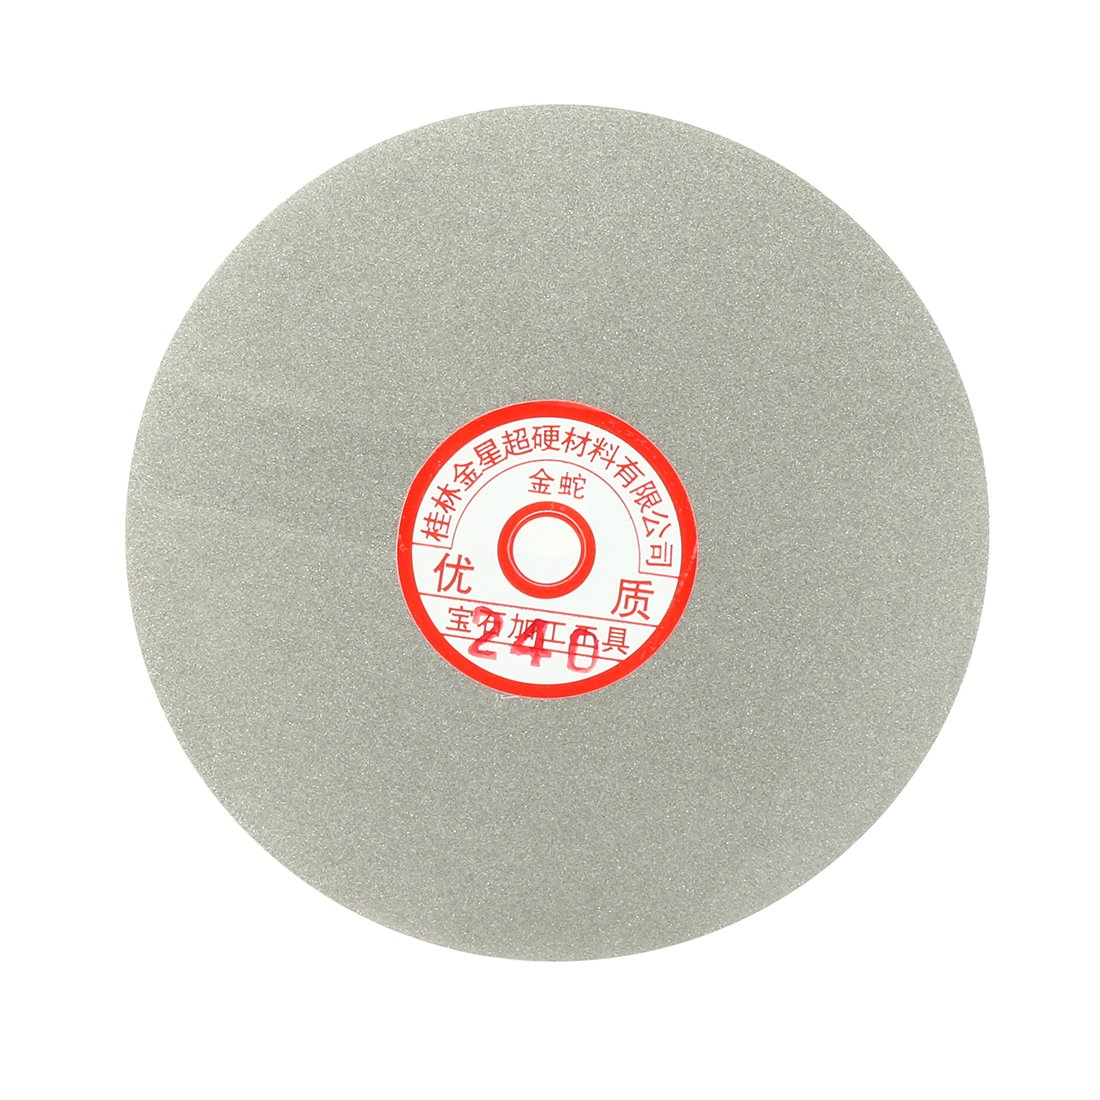 uxcell 6-inch Grit 240 Diamond Coated Flat Lap Wheel Grinding Sanding Polishing Disc a17030900ux1366